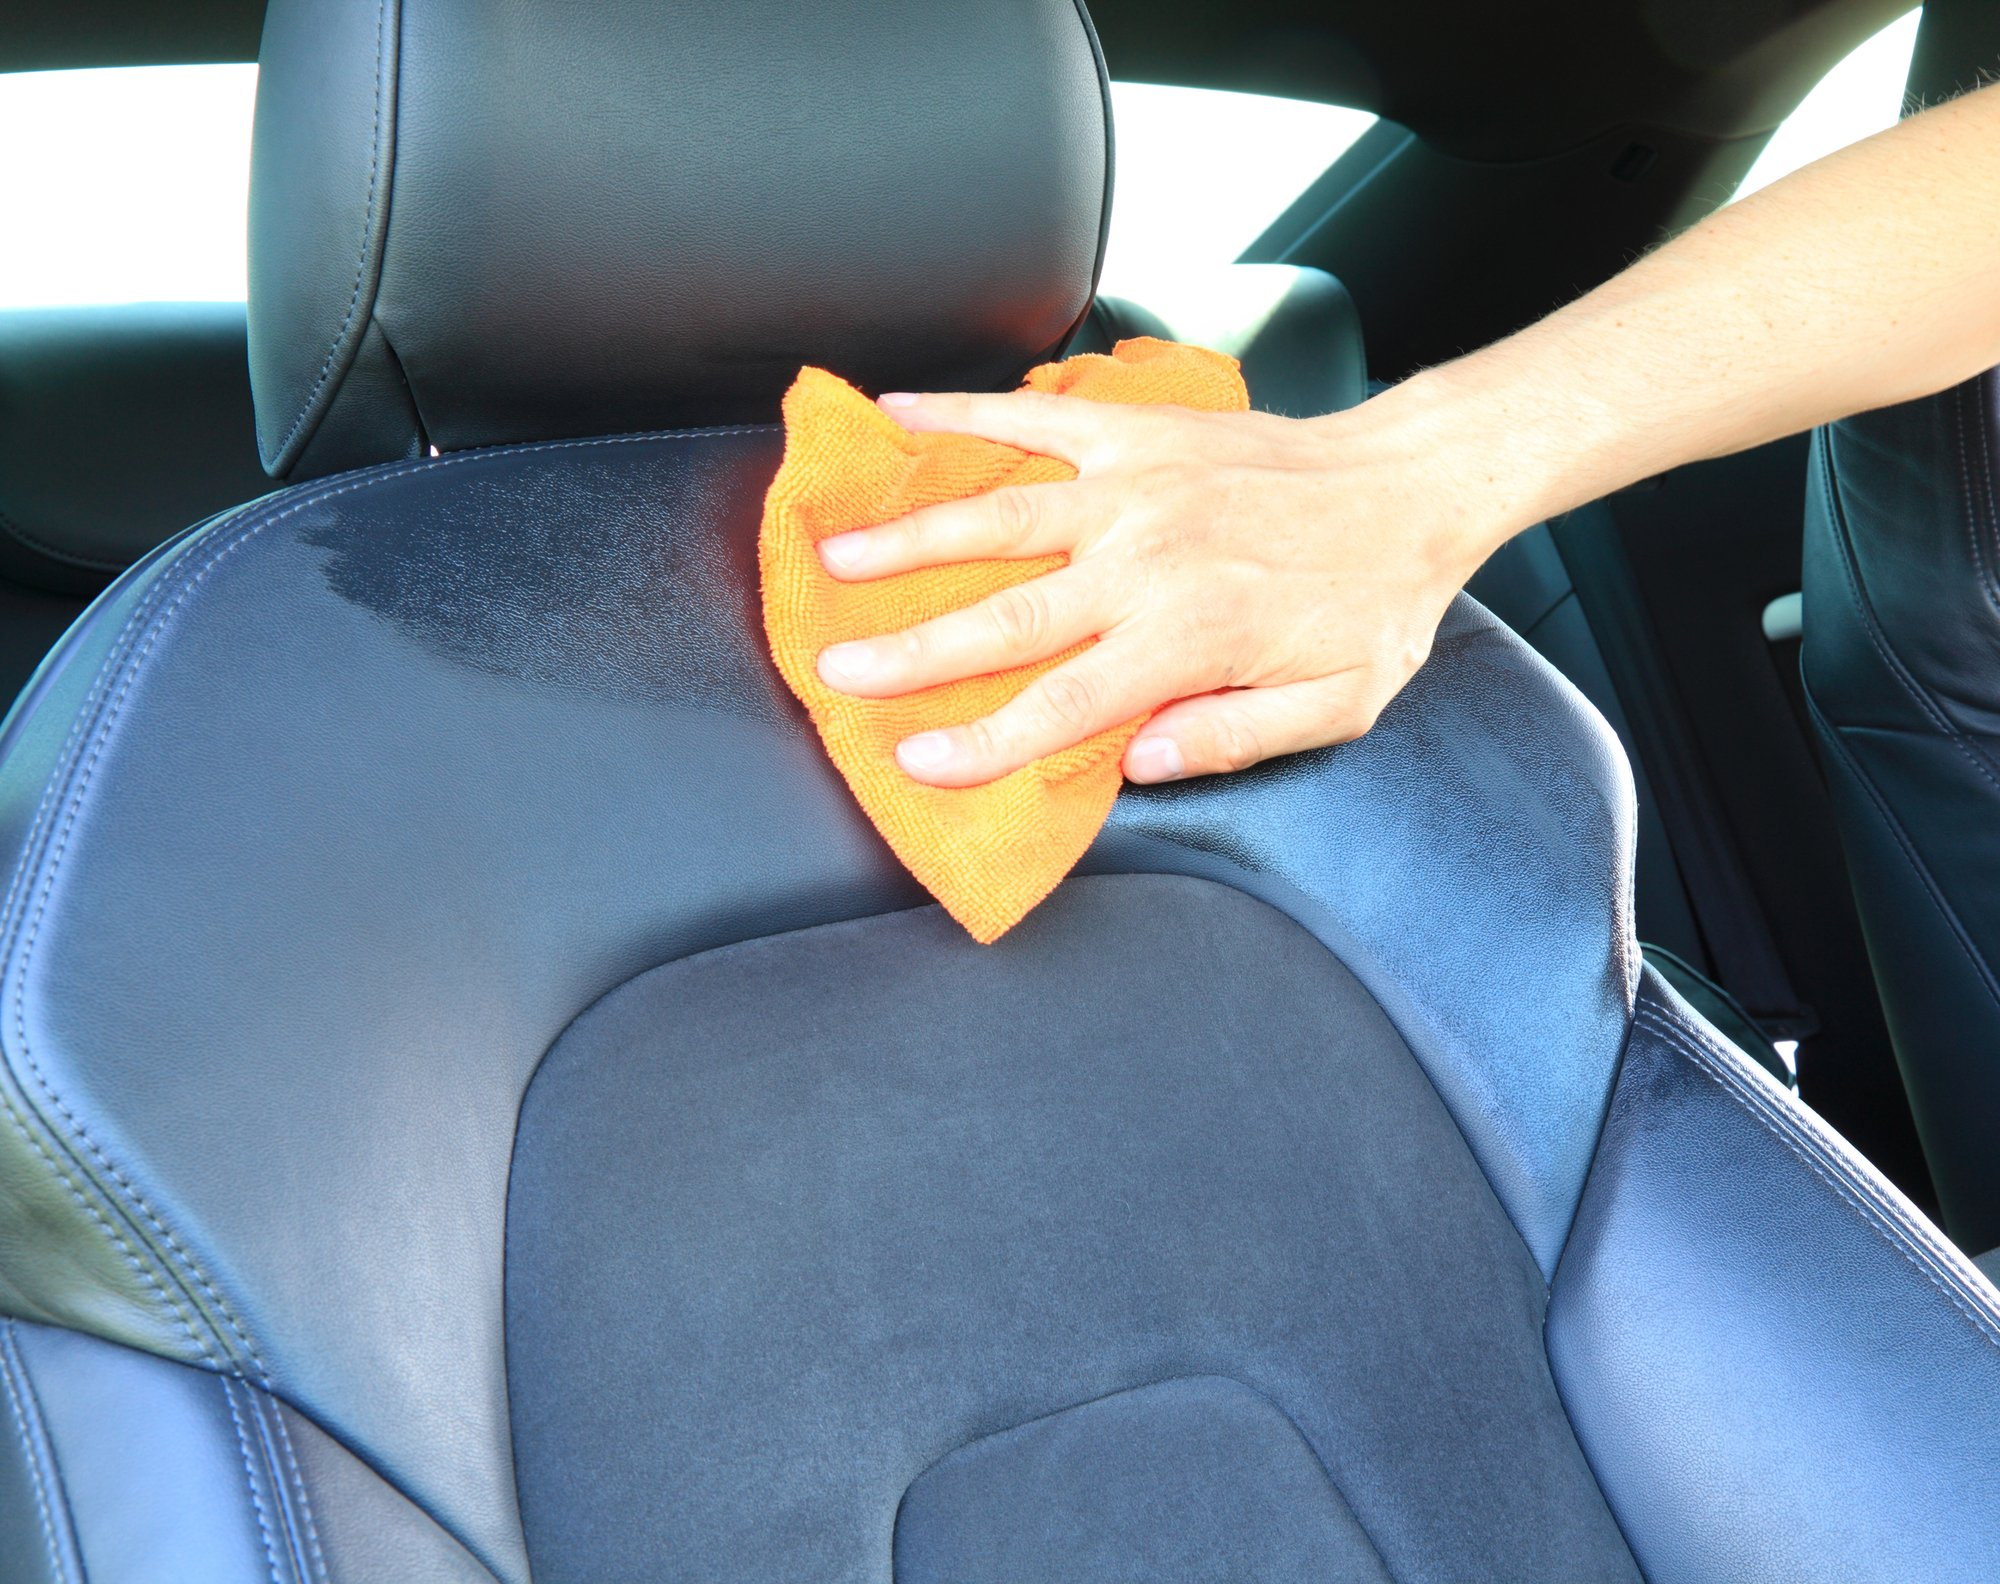 How To Remove Ink From Leather Car Seats, How To Get Ink Off Leather Car Seats